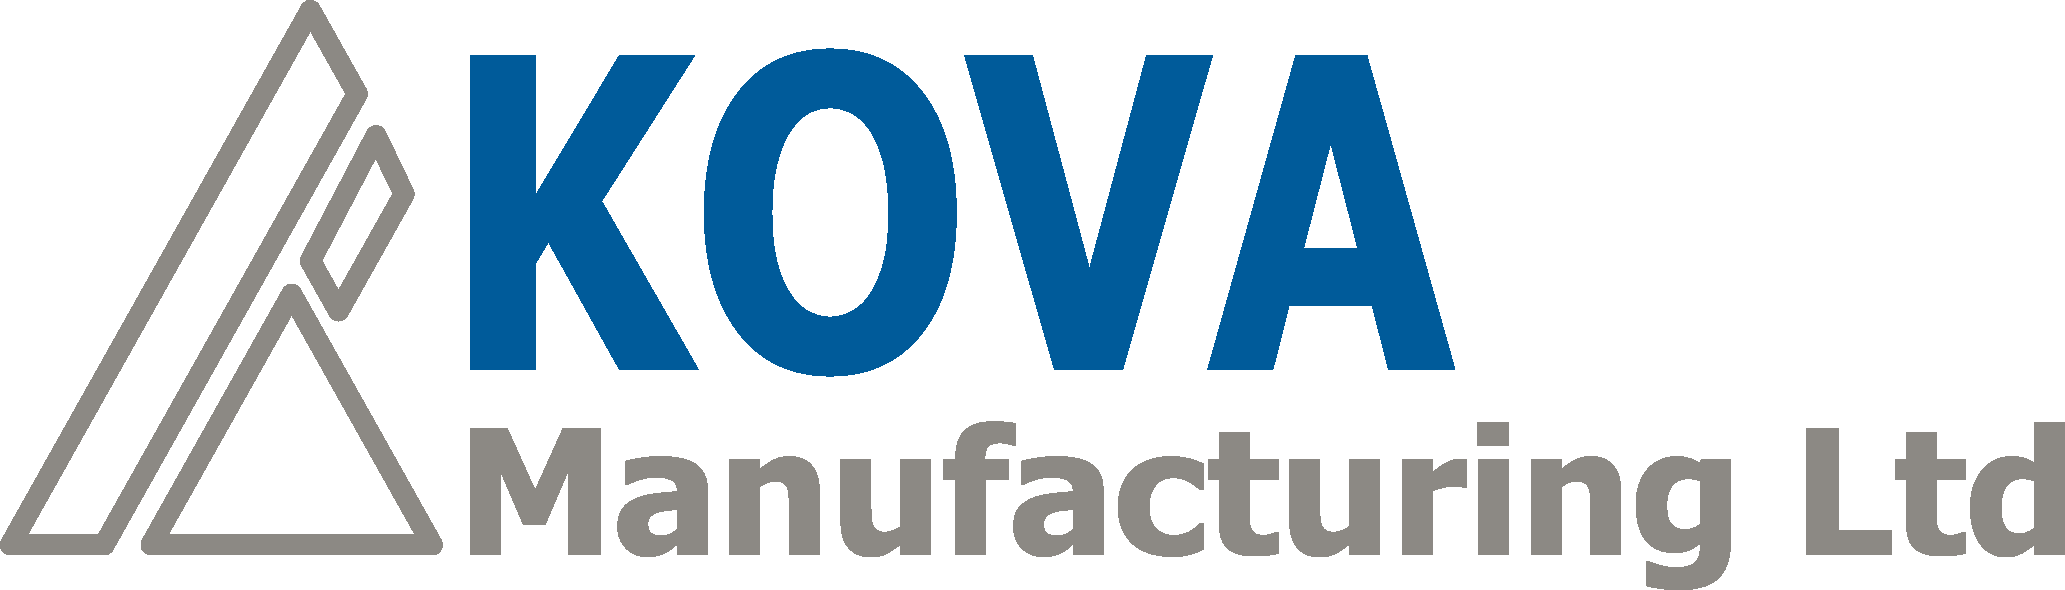 Kova Manufacturing Ltd